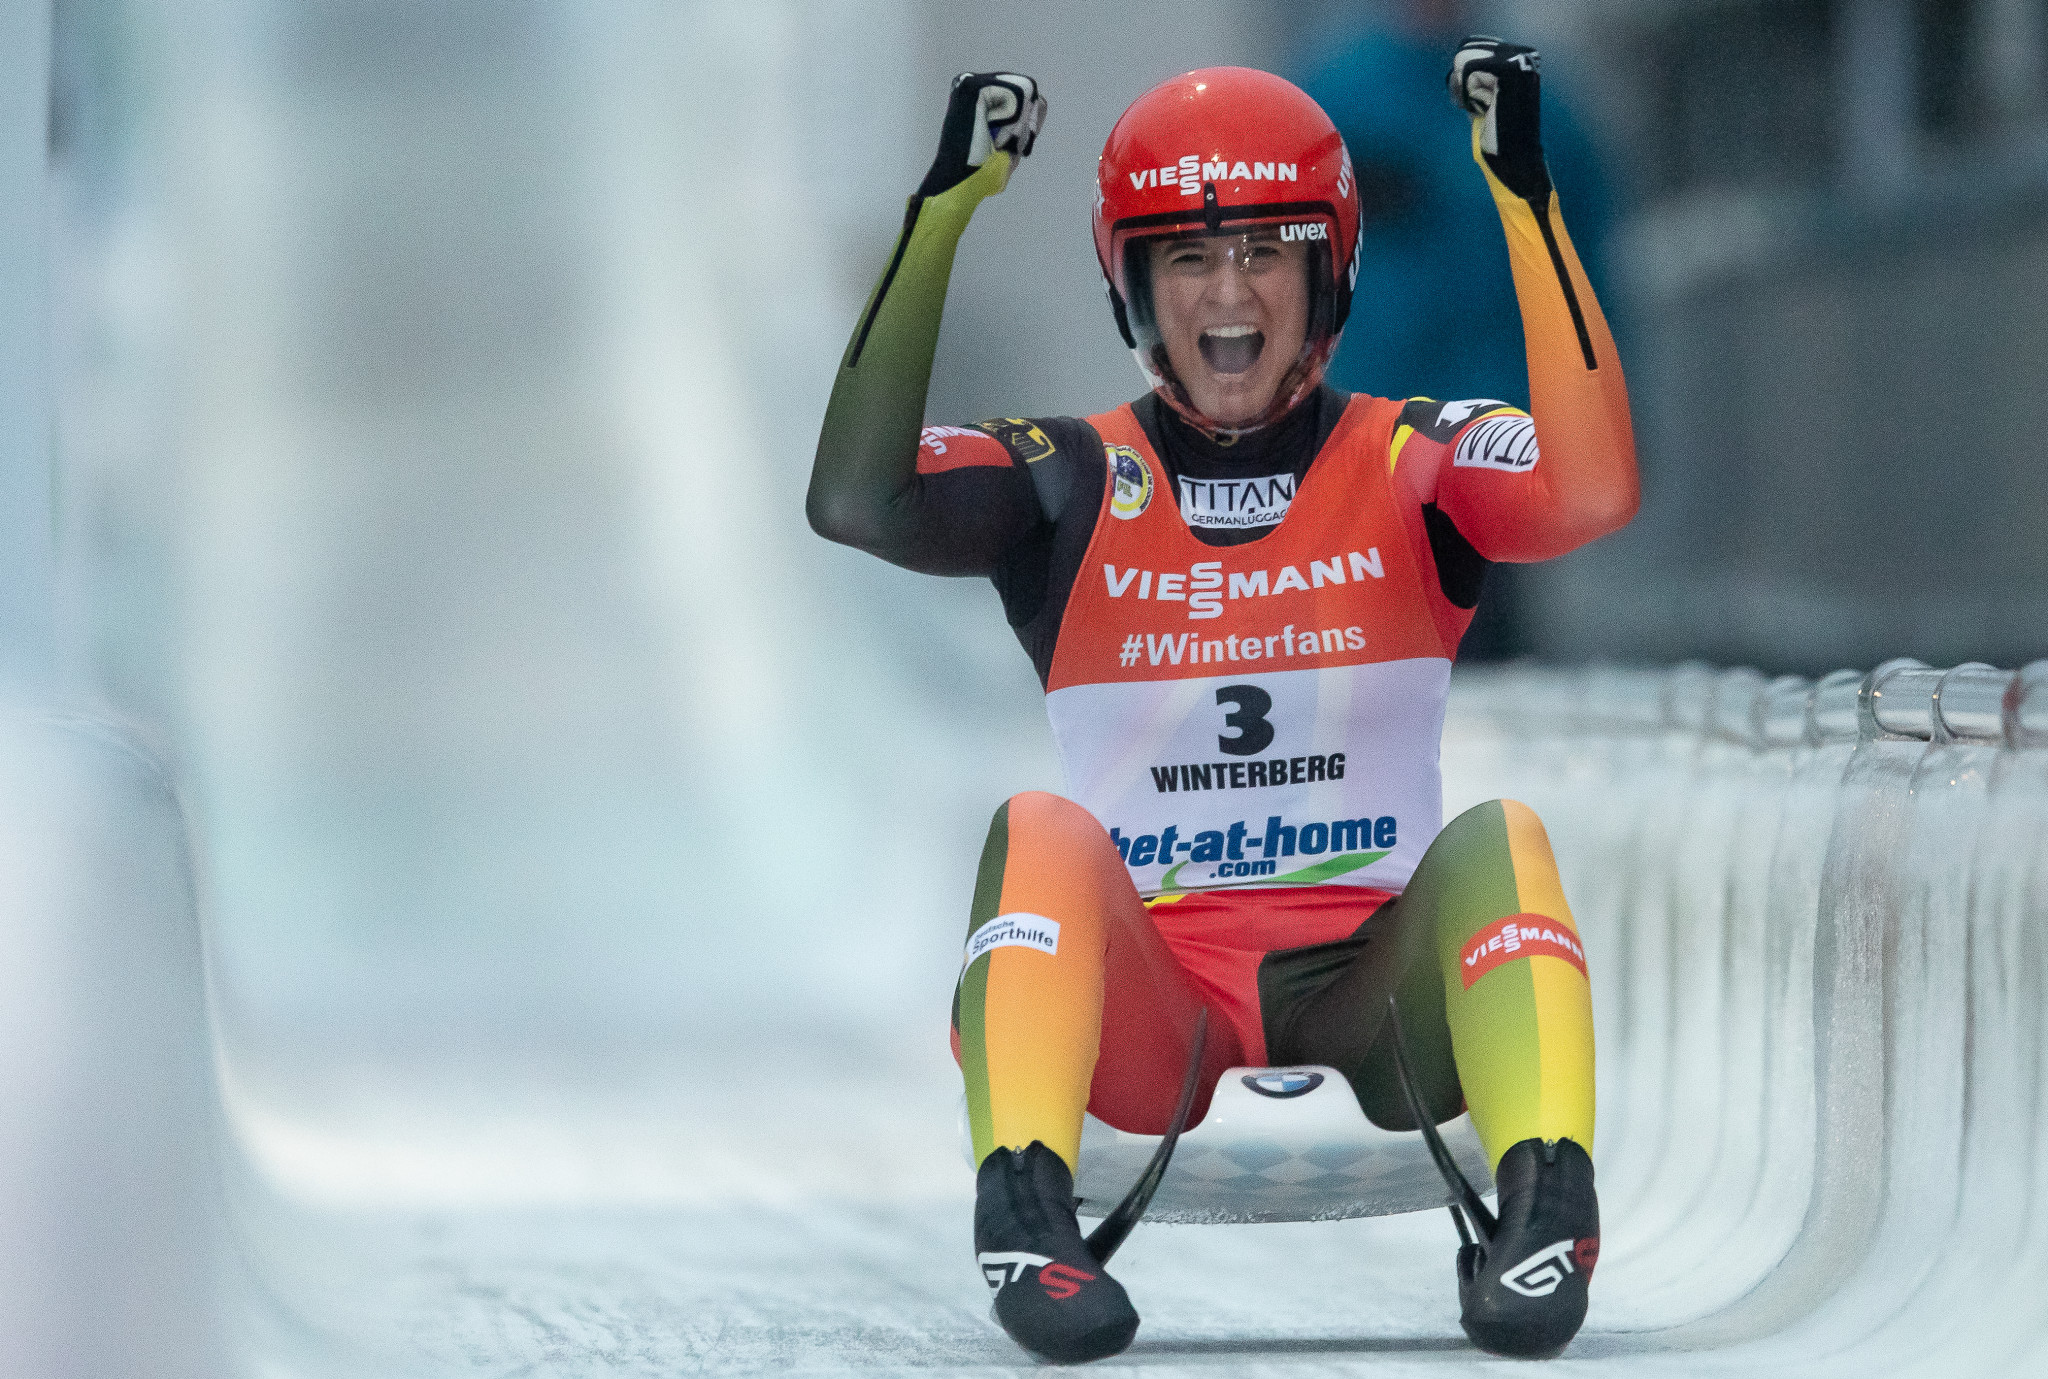 Olympic luge champion Geisenberger to skip upcoming season